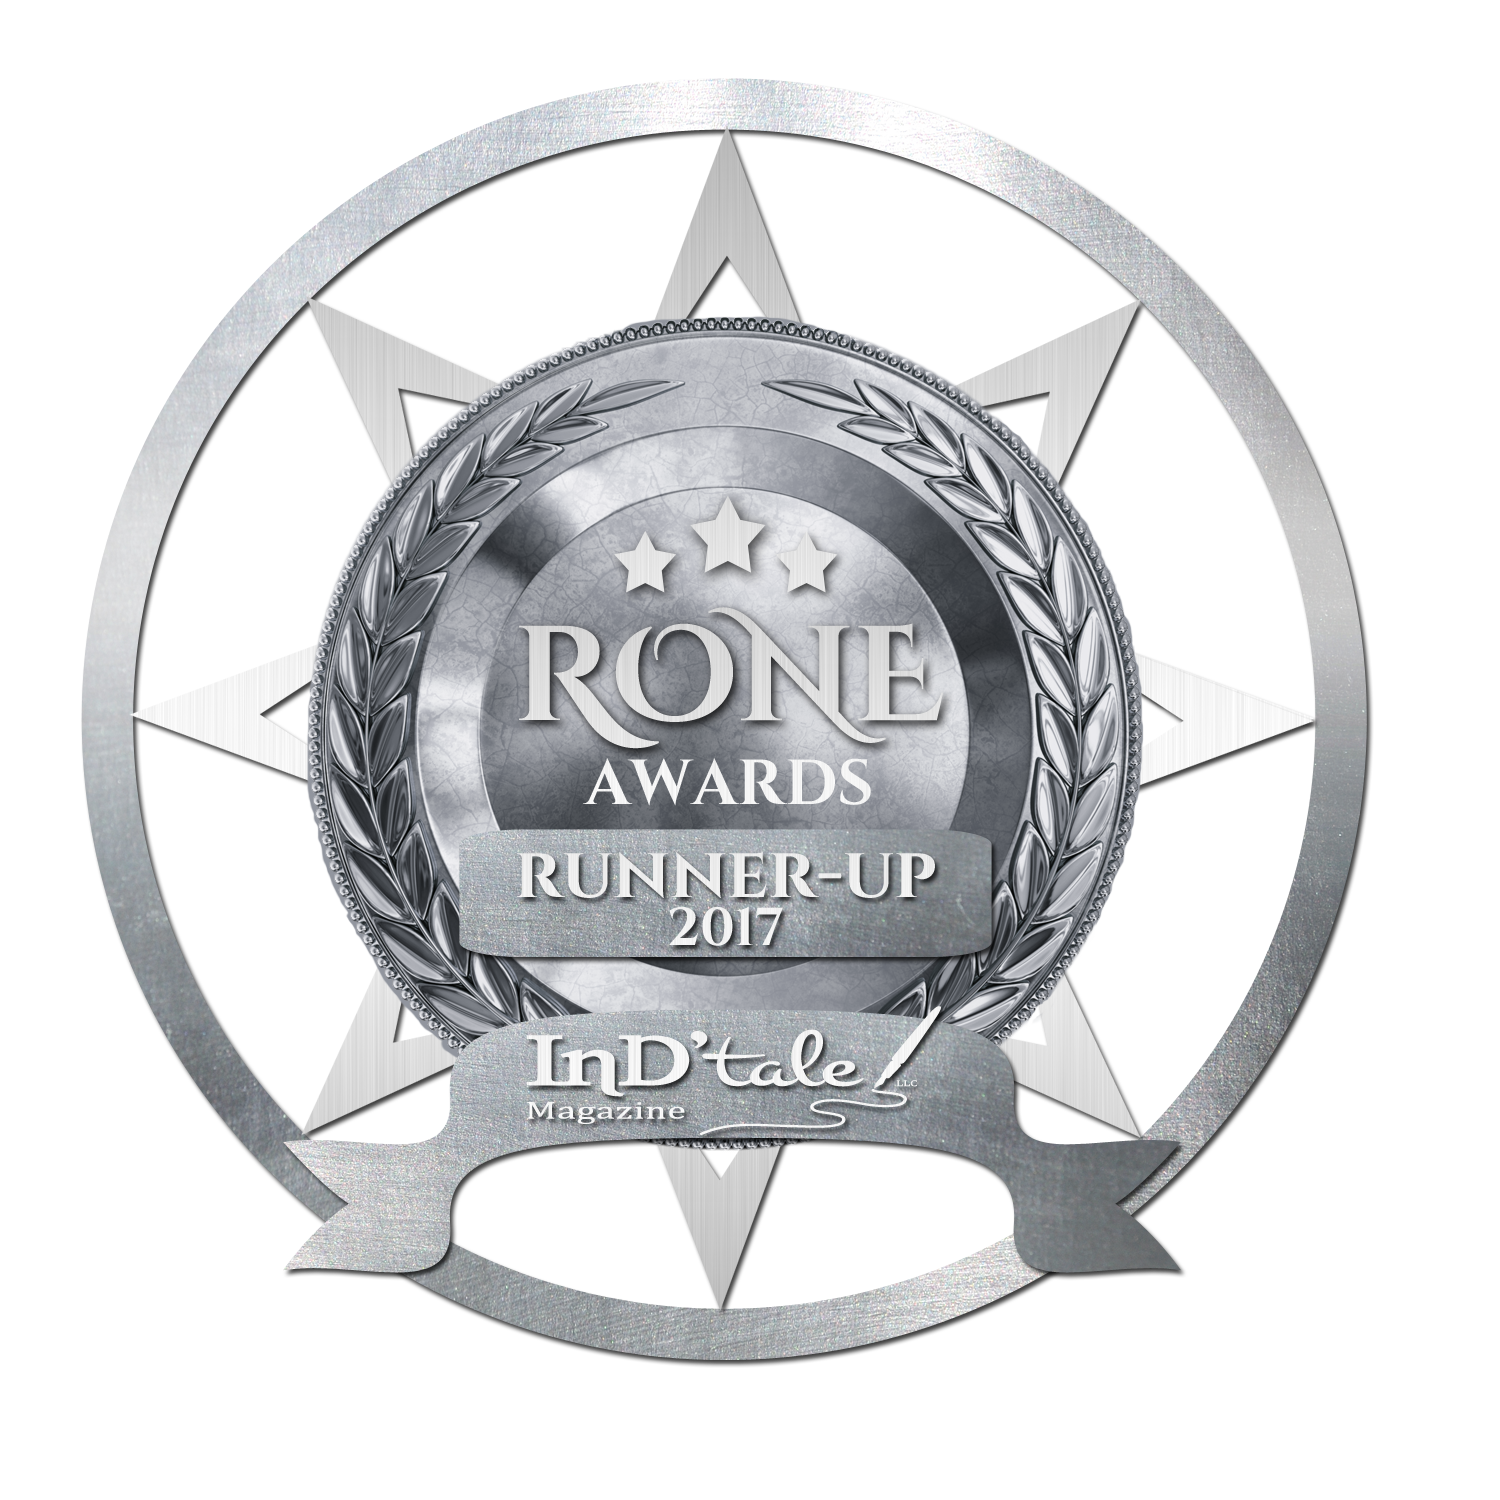 Rone-Badge-Runner-up-2017--